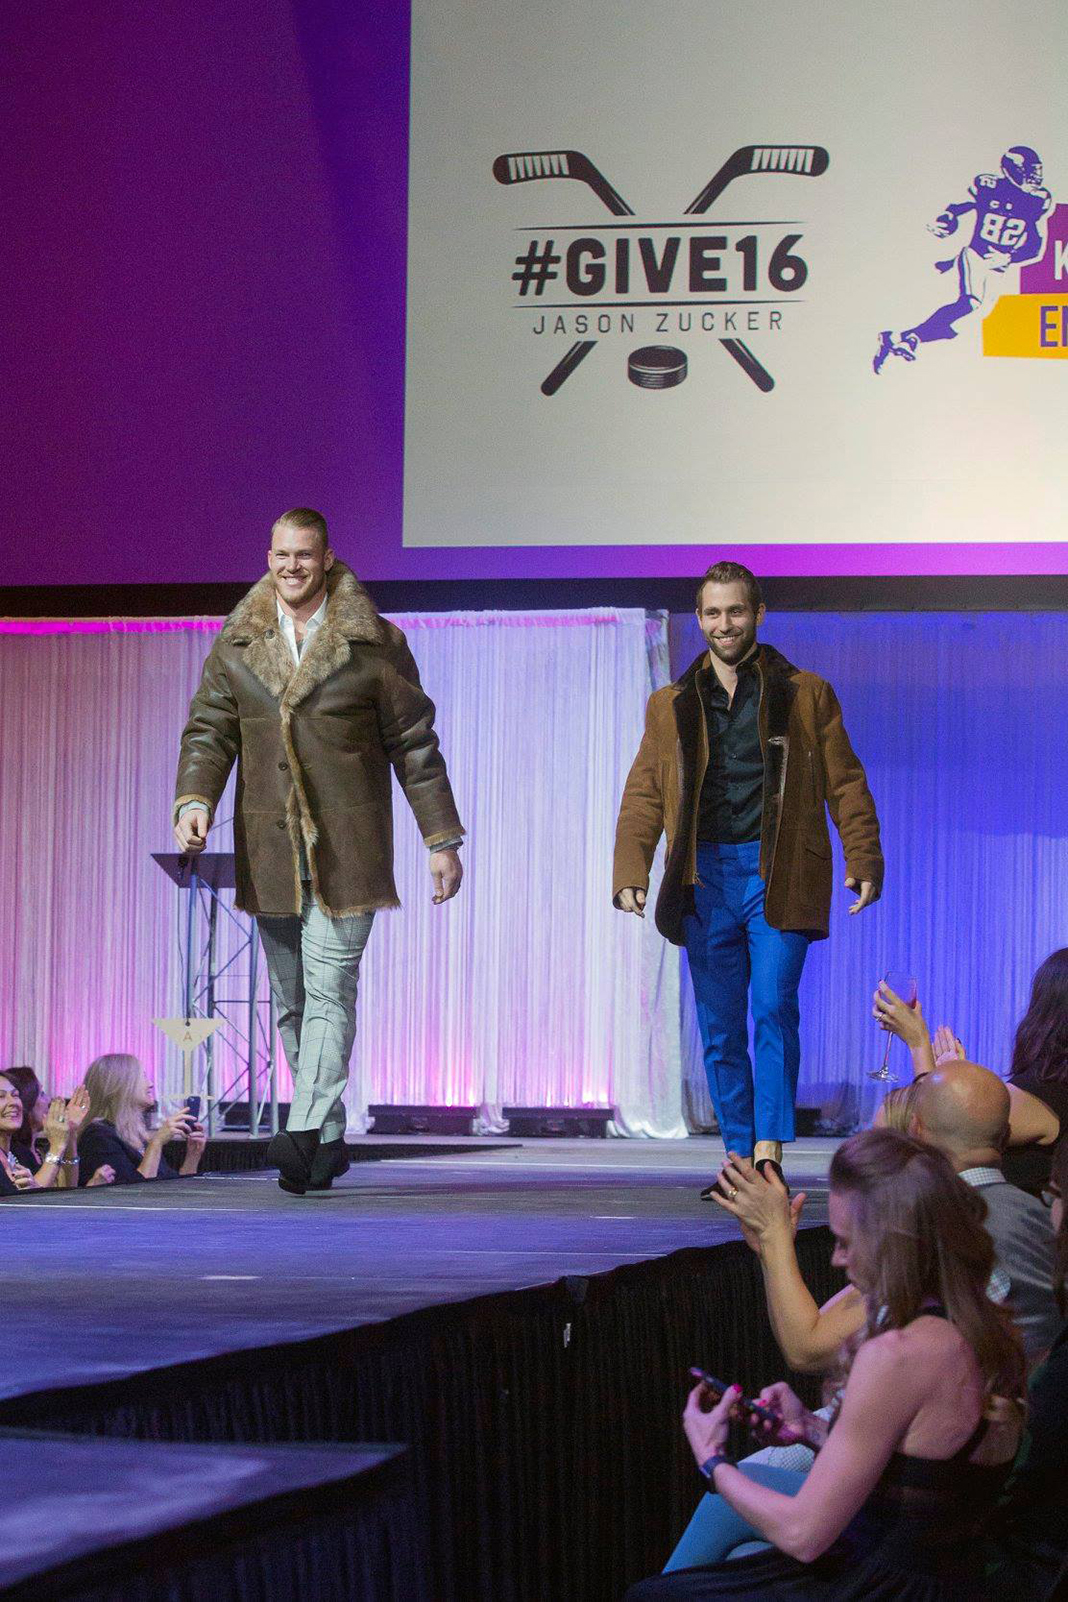 Minnesota Vikings tight end Kyle Rudolph and Minnesota Wild left wing Jason Zucker walk the runway at FashionFest 2018.